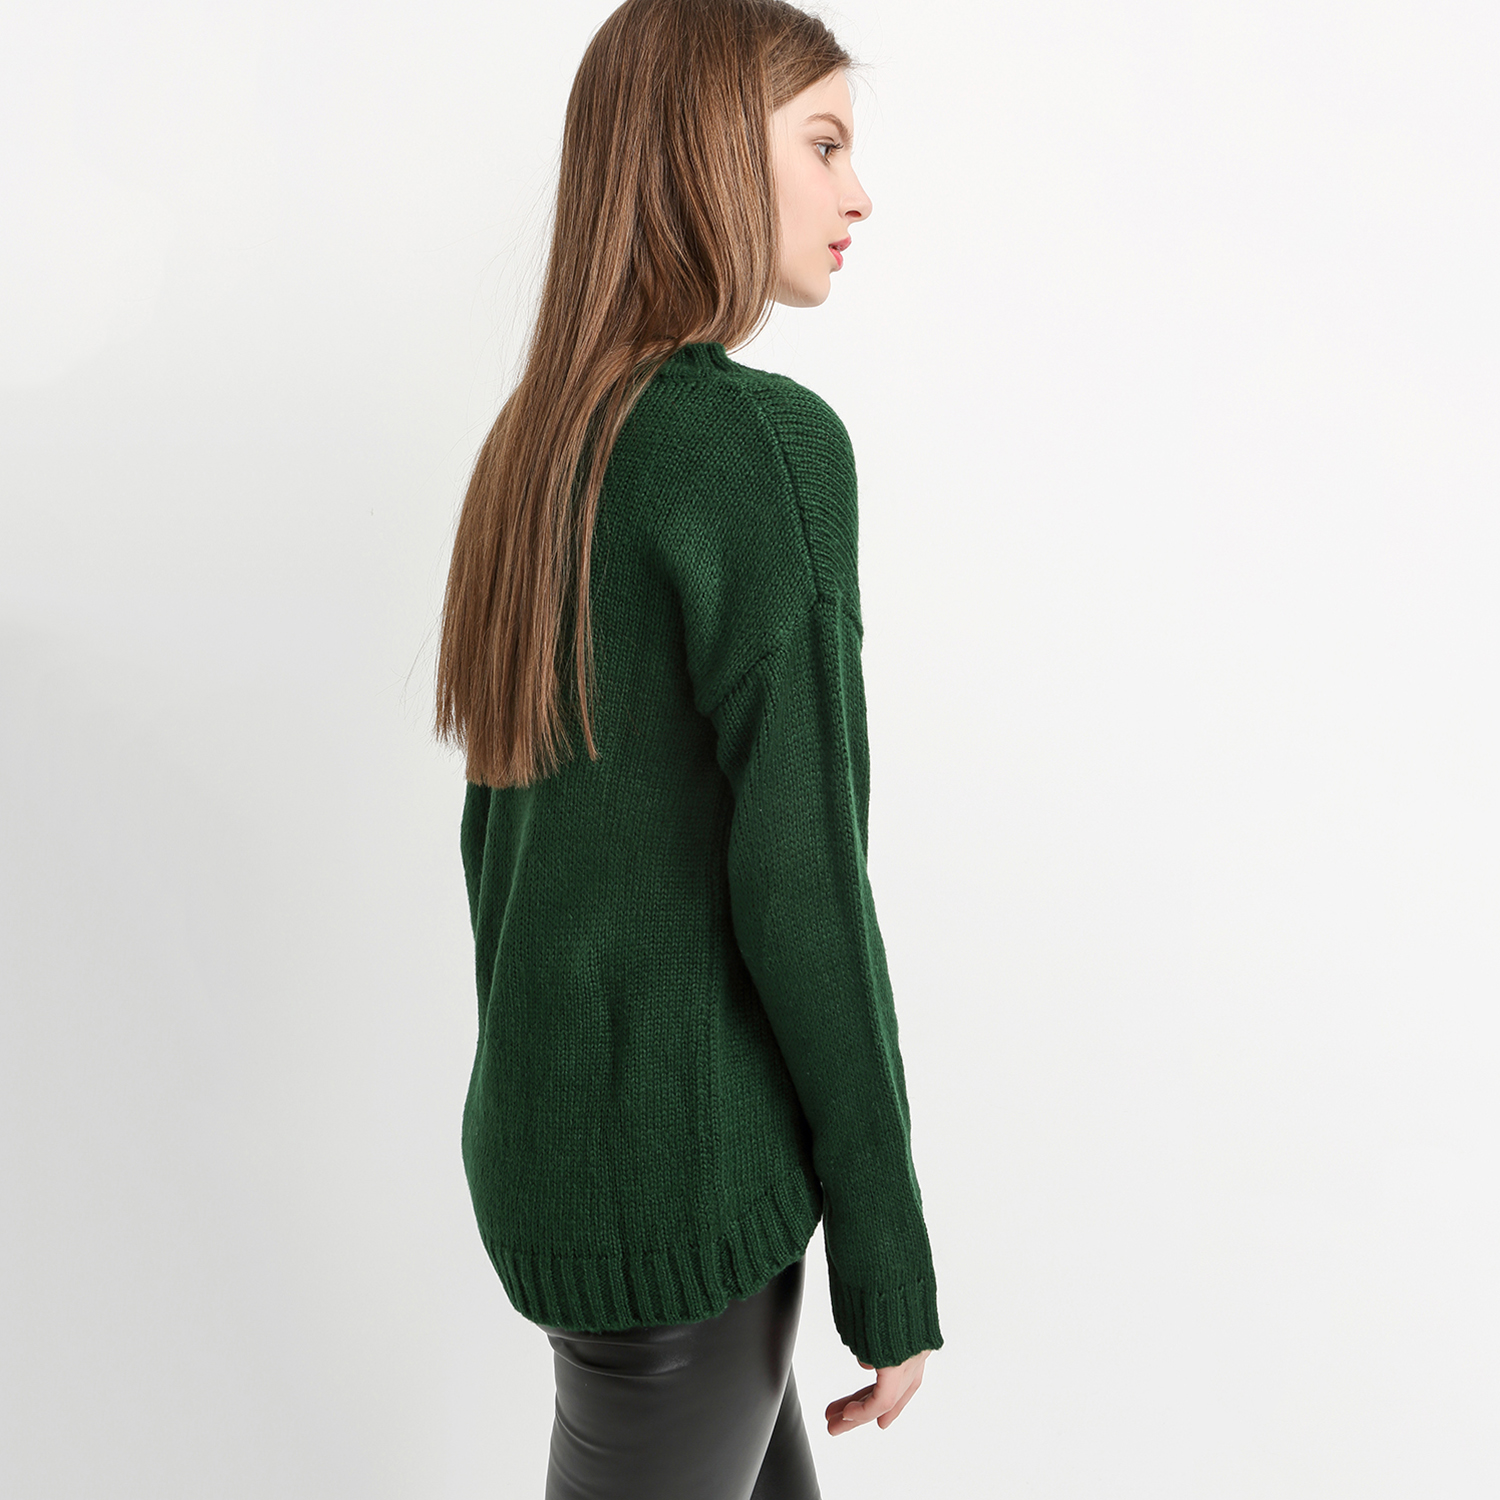 My Mayaasos Office Lady New Autumn Solid Green Sweater Fashion Women Pullover Loose Casual Crew Neck Knitwear In Pul From S Clothing